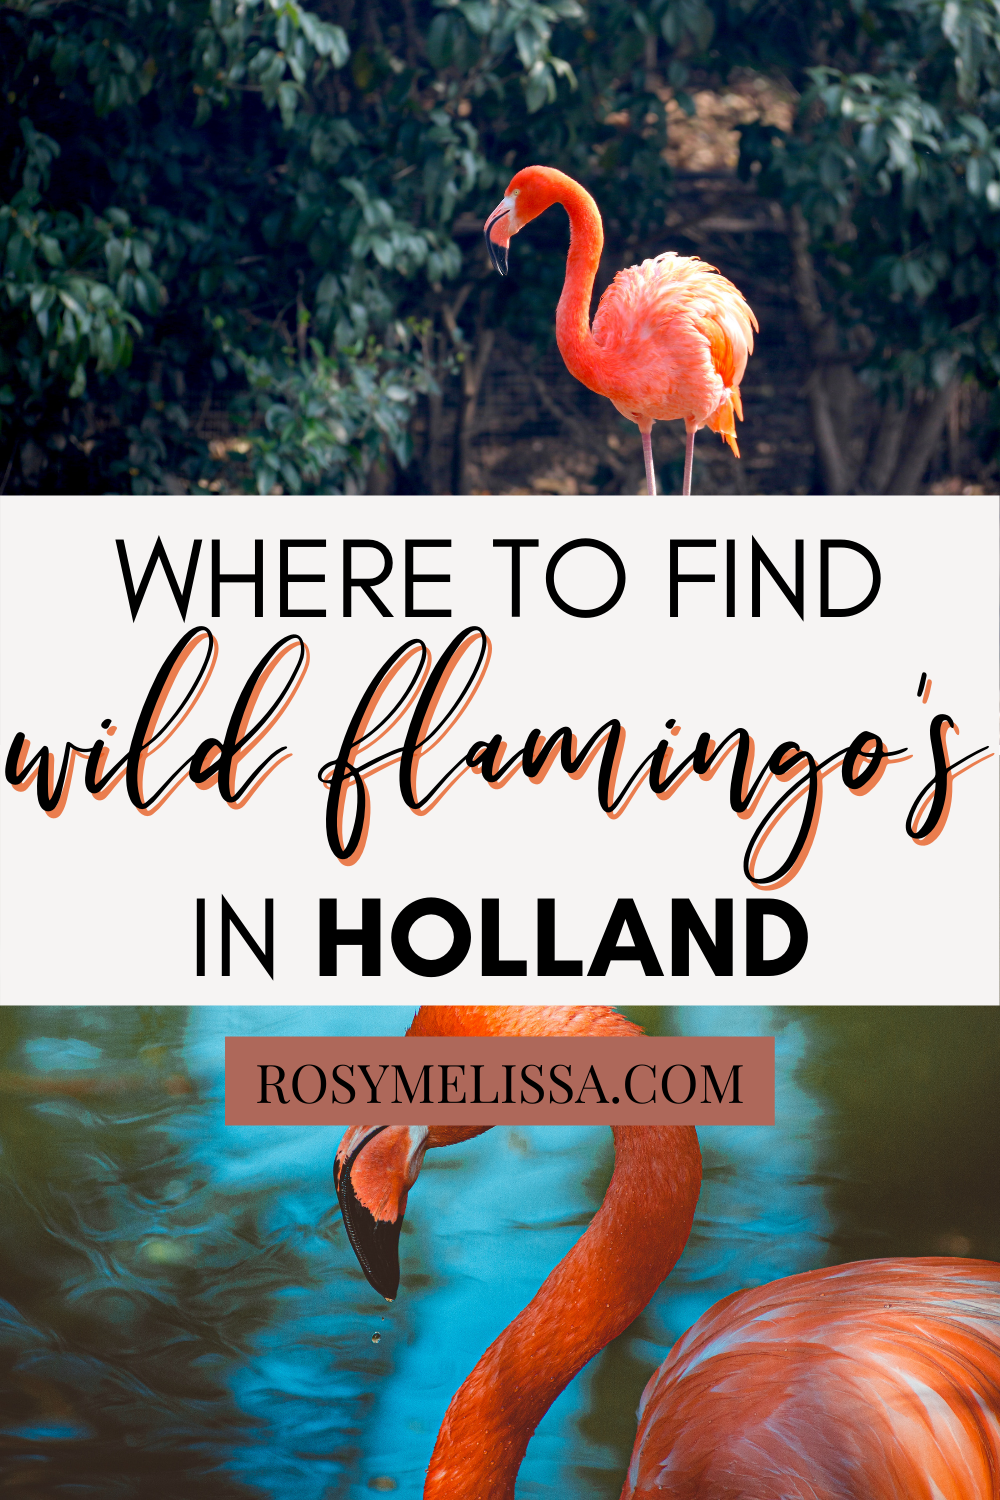 where to find wild flamingo's in the netherlands, flamingos in holland, wild flamingo's